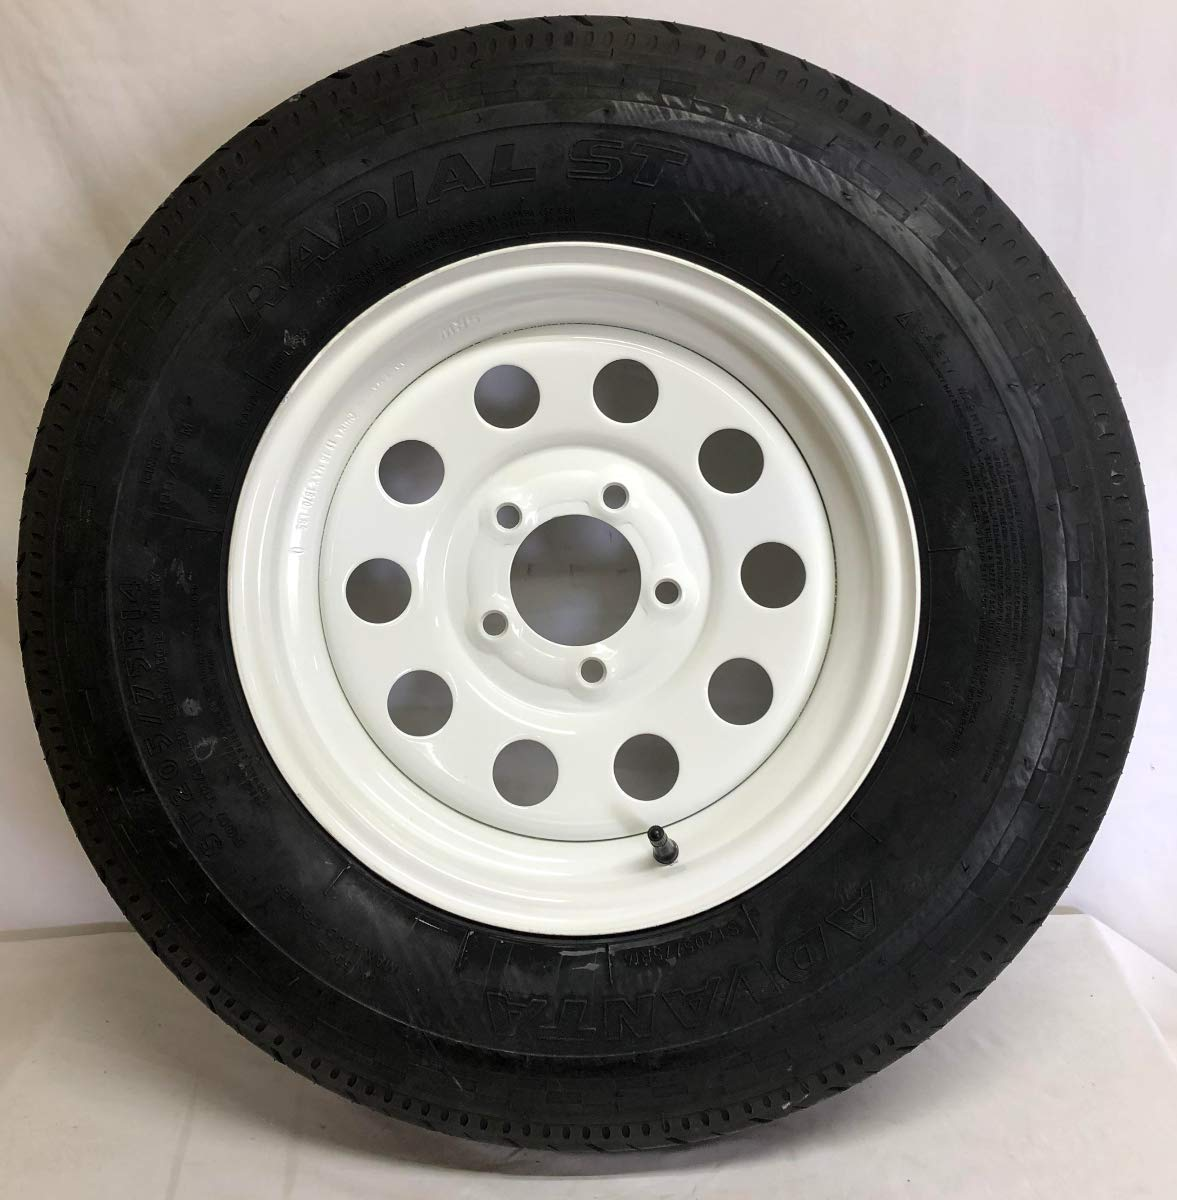 New 14 White Mod Trailer Wheel with Radial ST205//75R14 Tire Mounted bolt circle 5x4.5